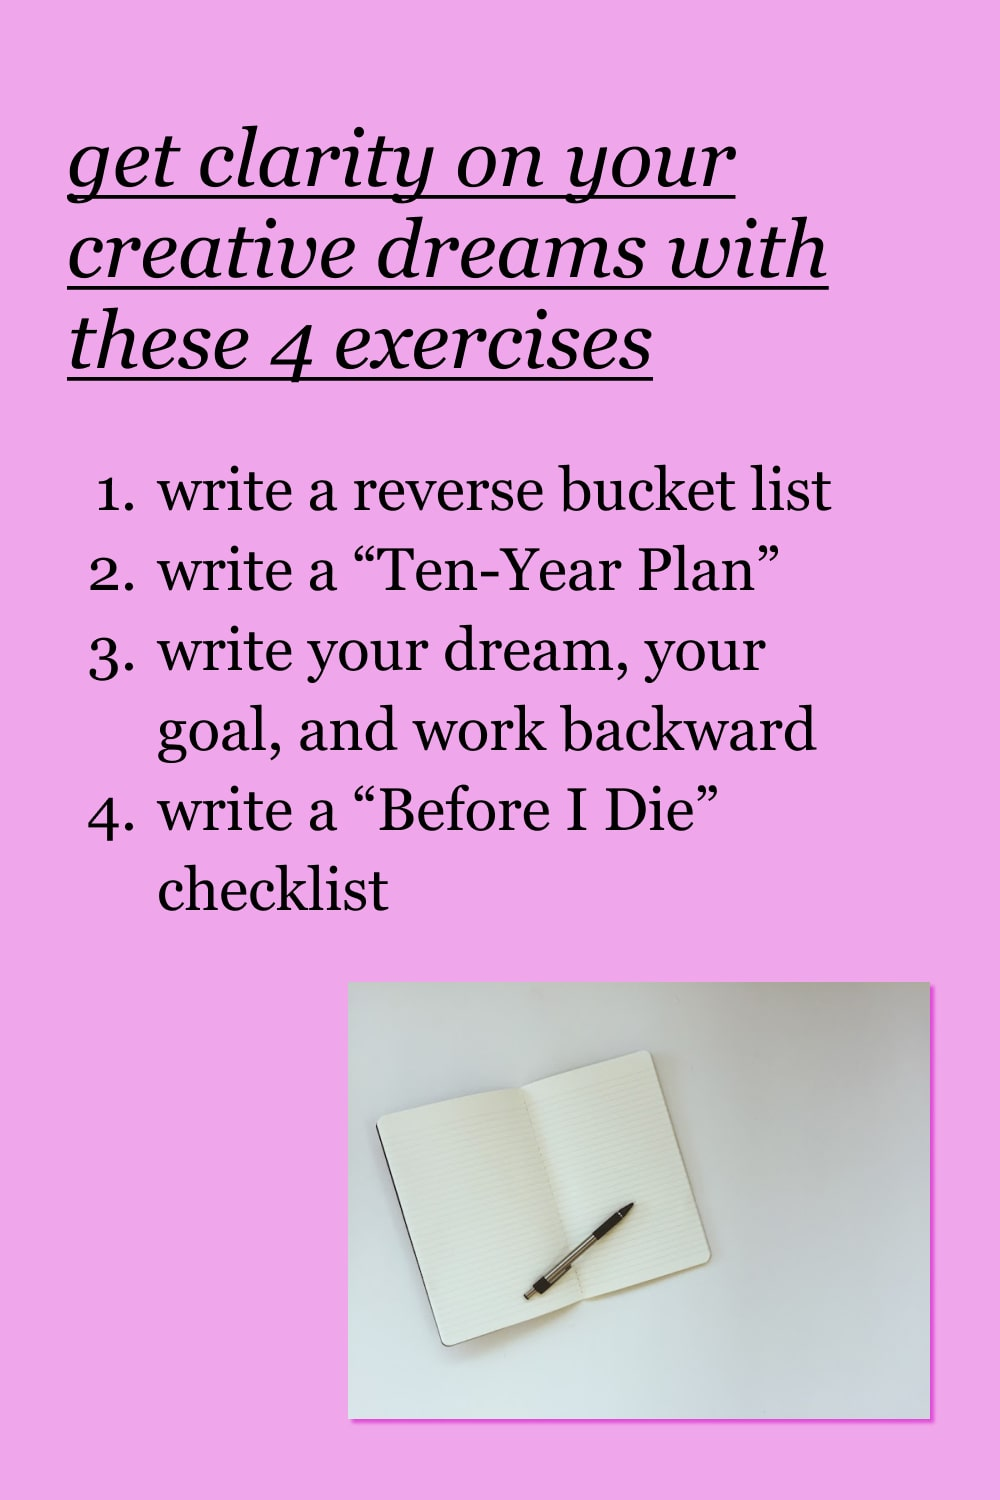 pink background with list of four exercises for creative visioning and notebook flat lay image